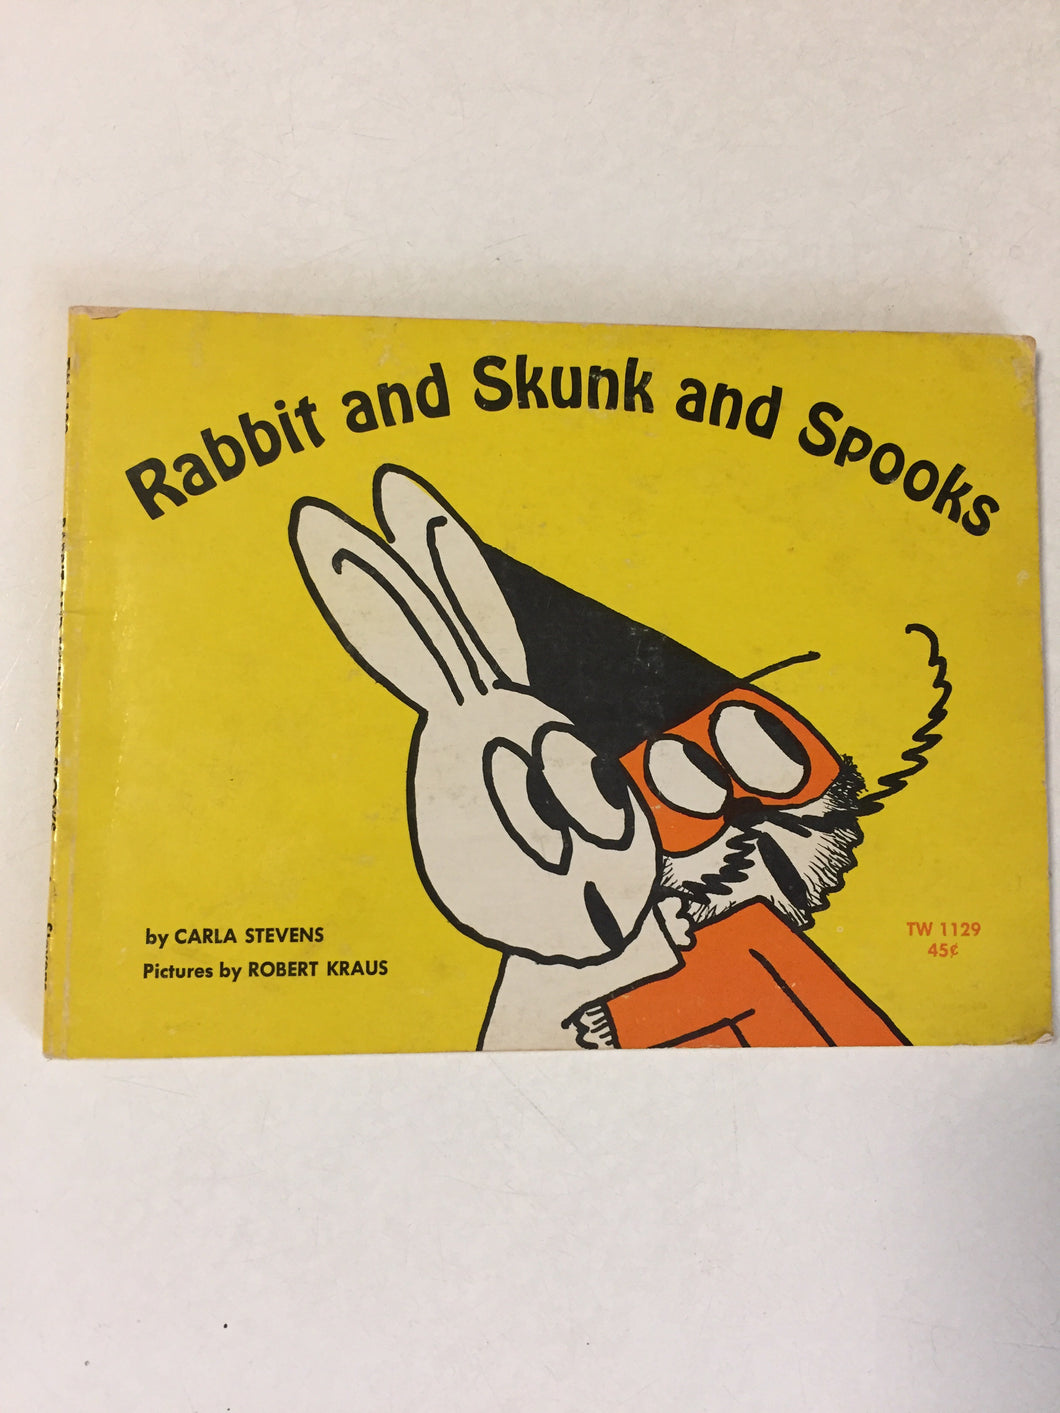 Rabbit and Skunk and Spooks